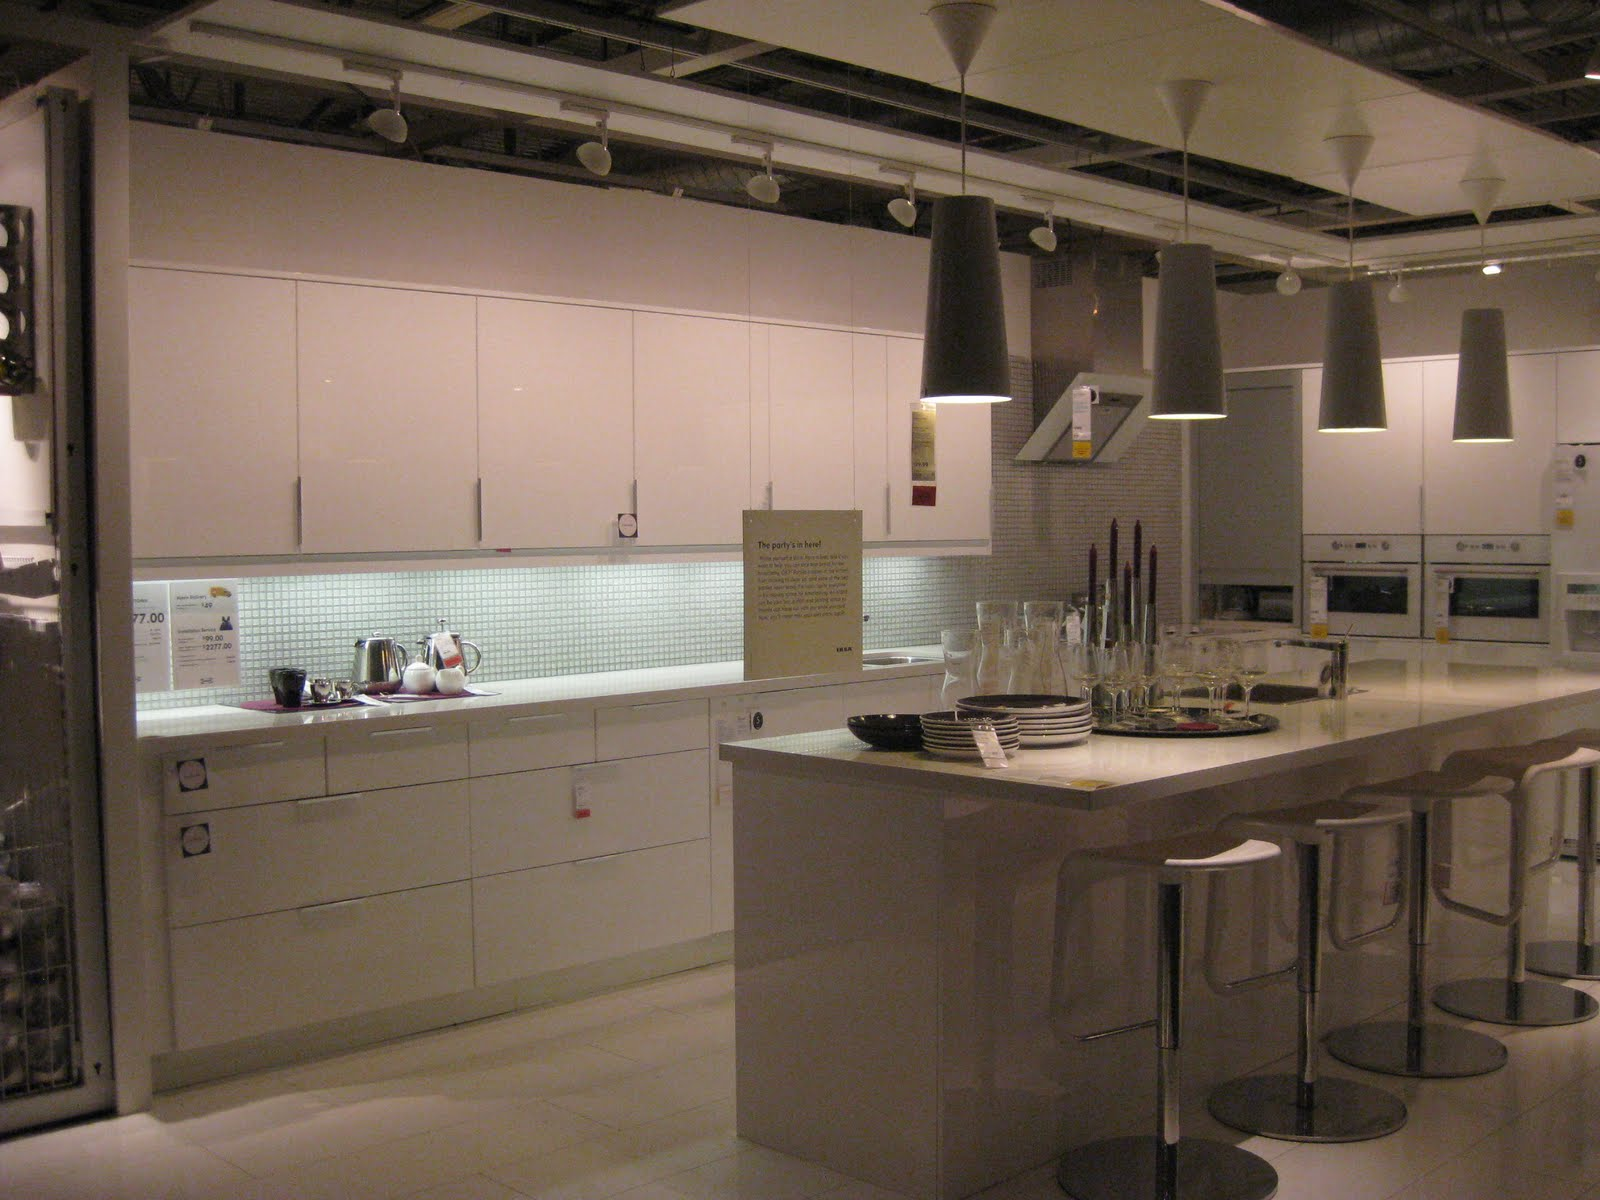 Ikea Kitchen Cabinets For Amazing Kitchen: EvY At HomE: Ikea Kitchen